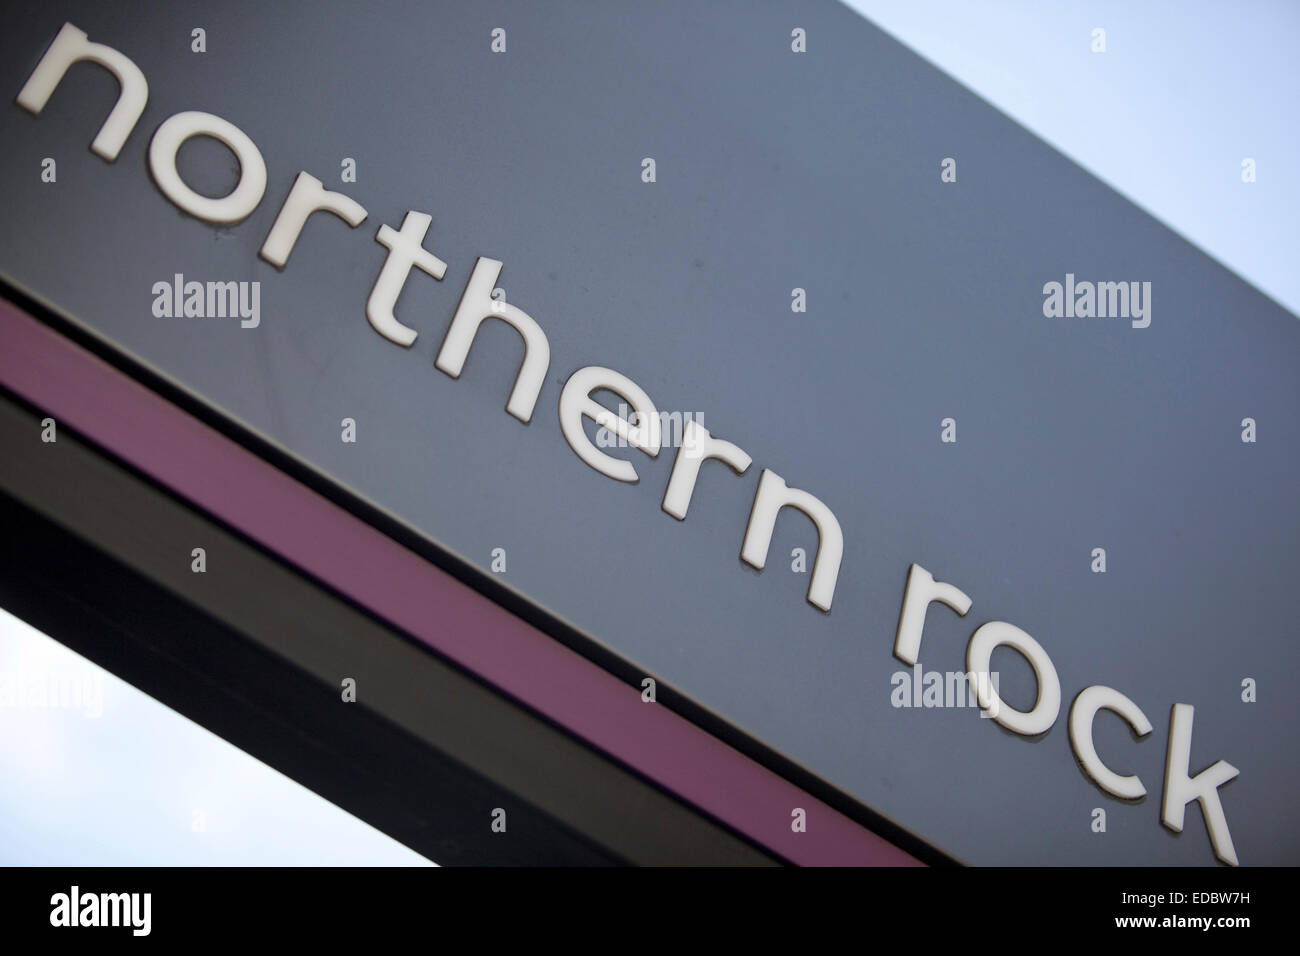 Northern Rock branch sign. Stock Photo